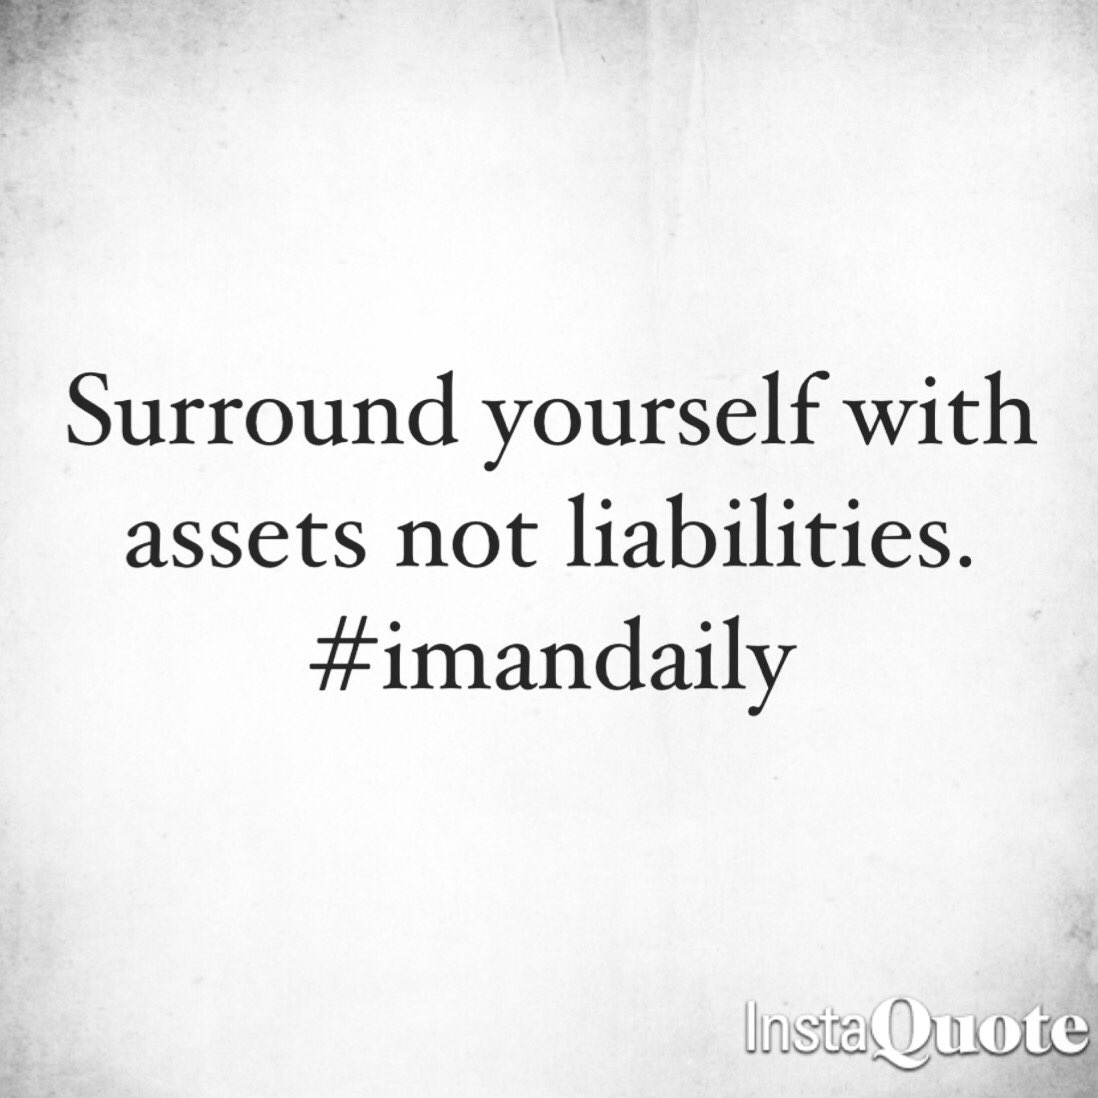 #imandaily https://t.co/saT9kJWxtb